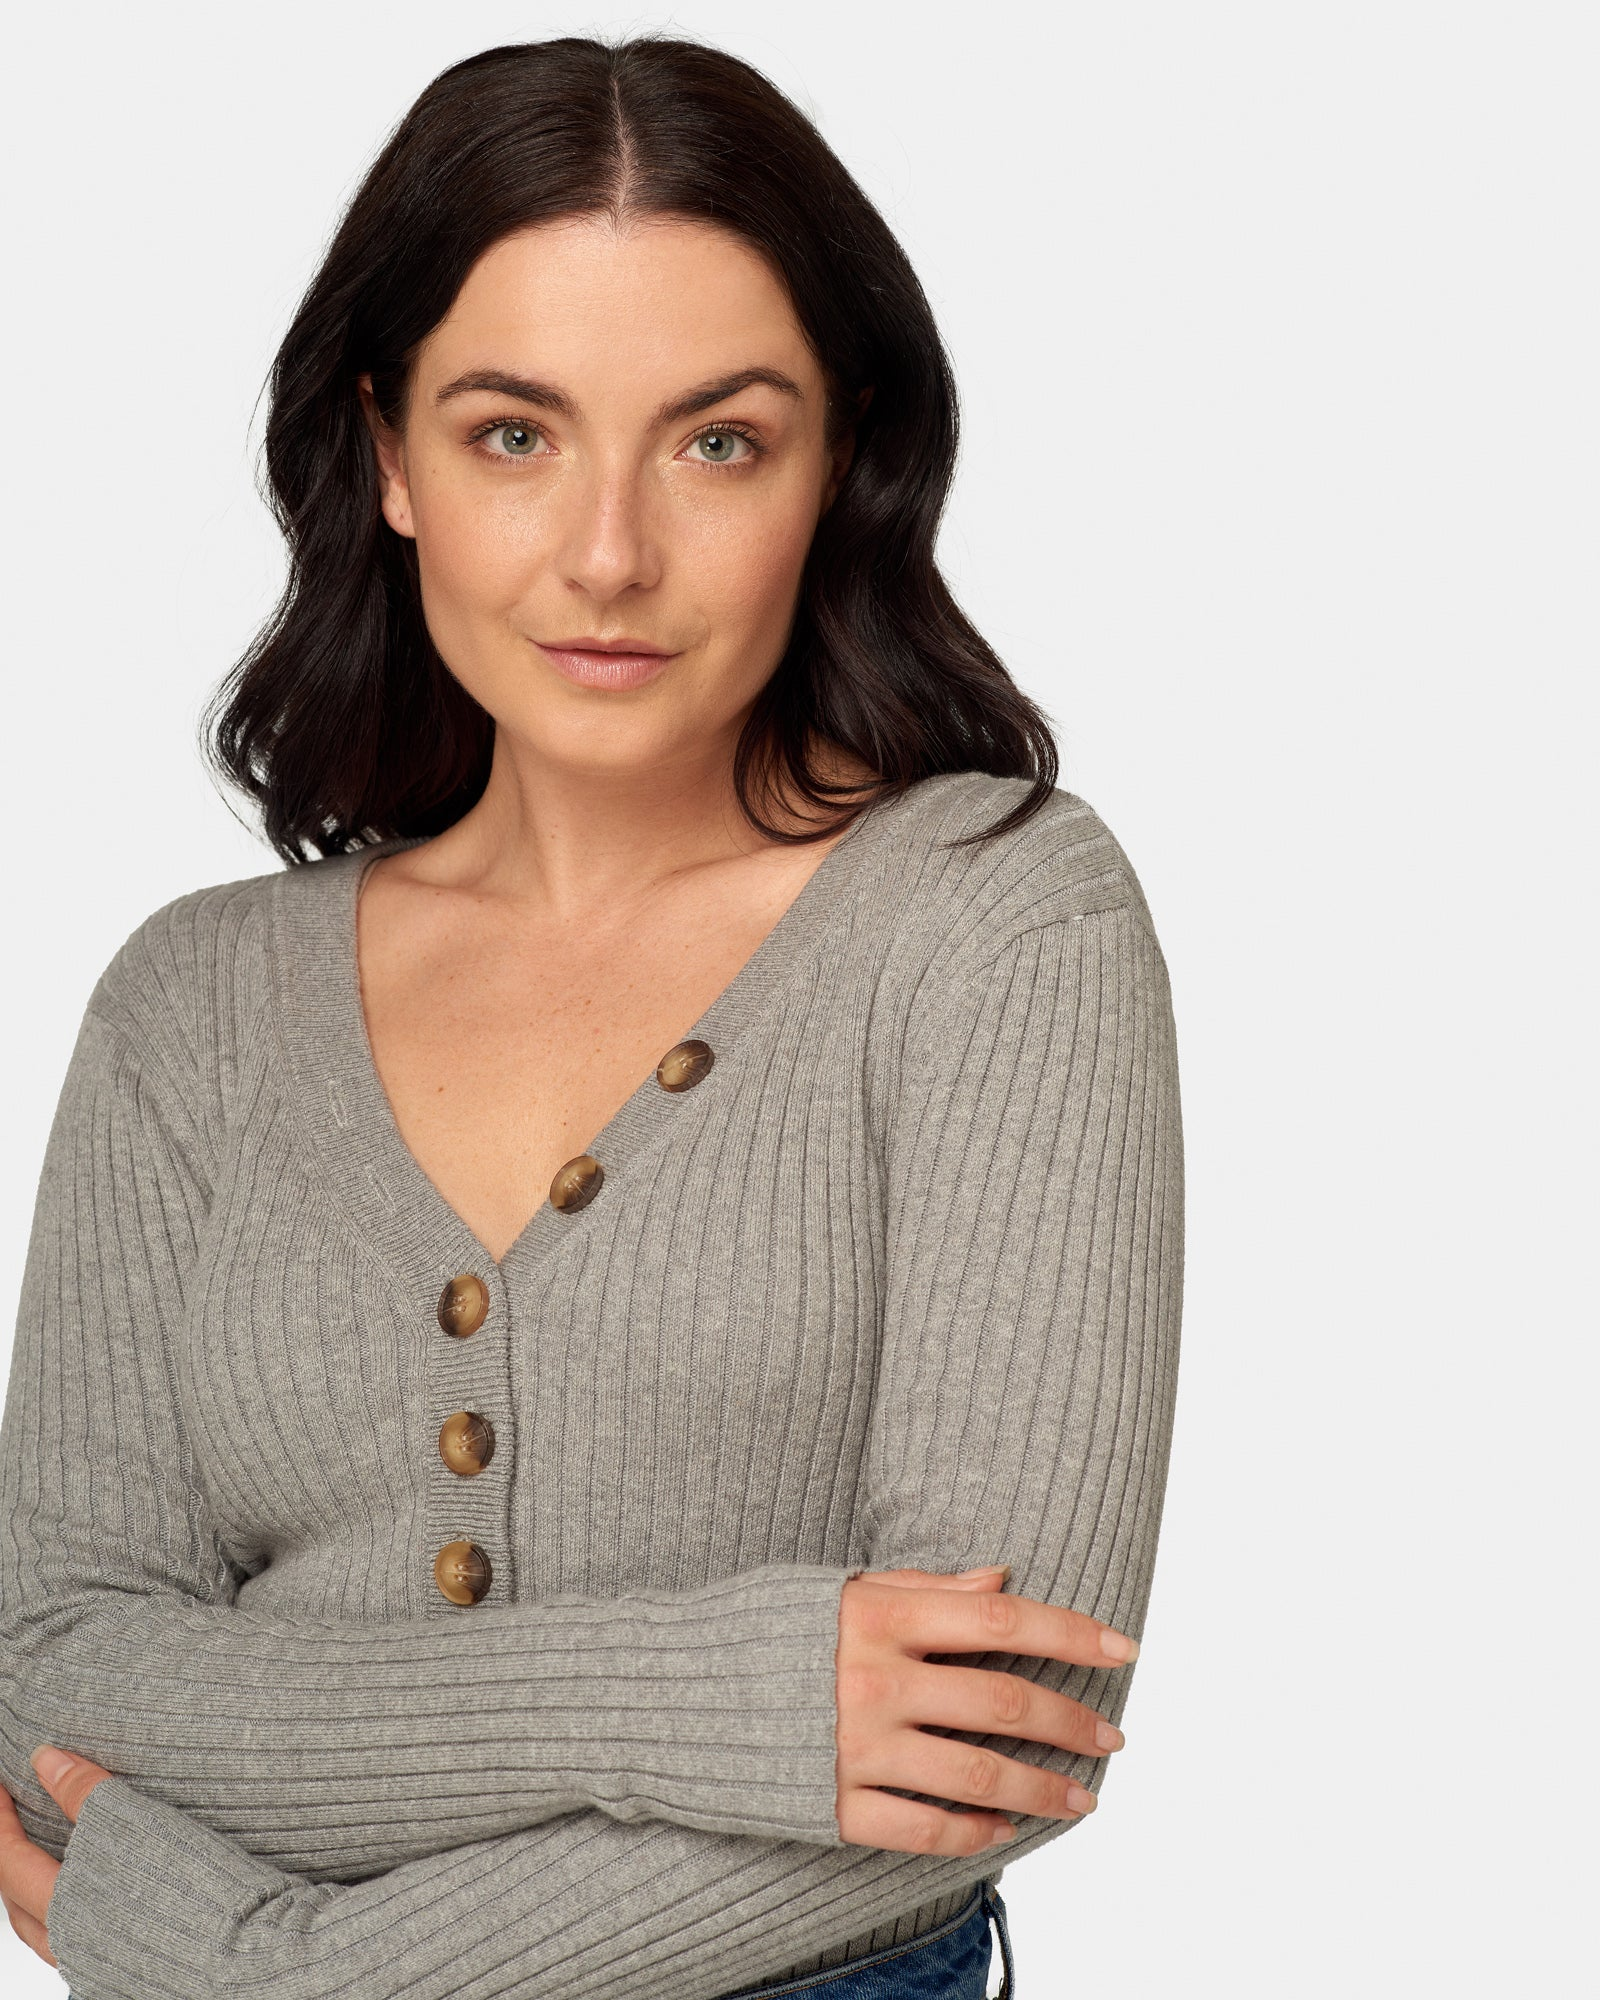 A sample from Maxted's knitwear